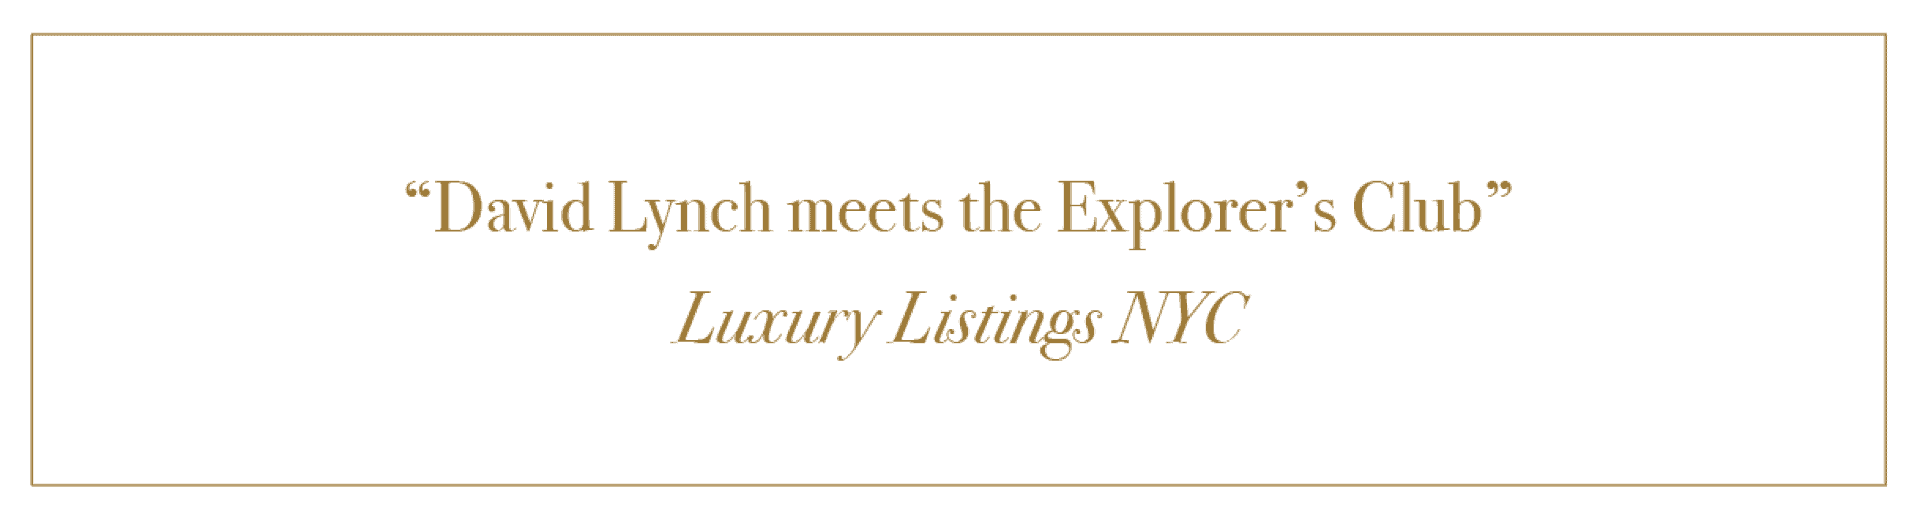 A Review from Luxury Listings NYC